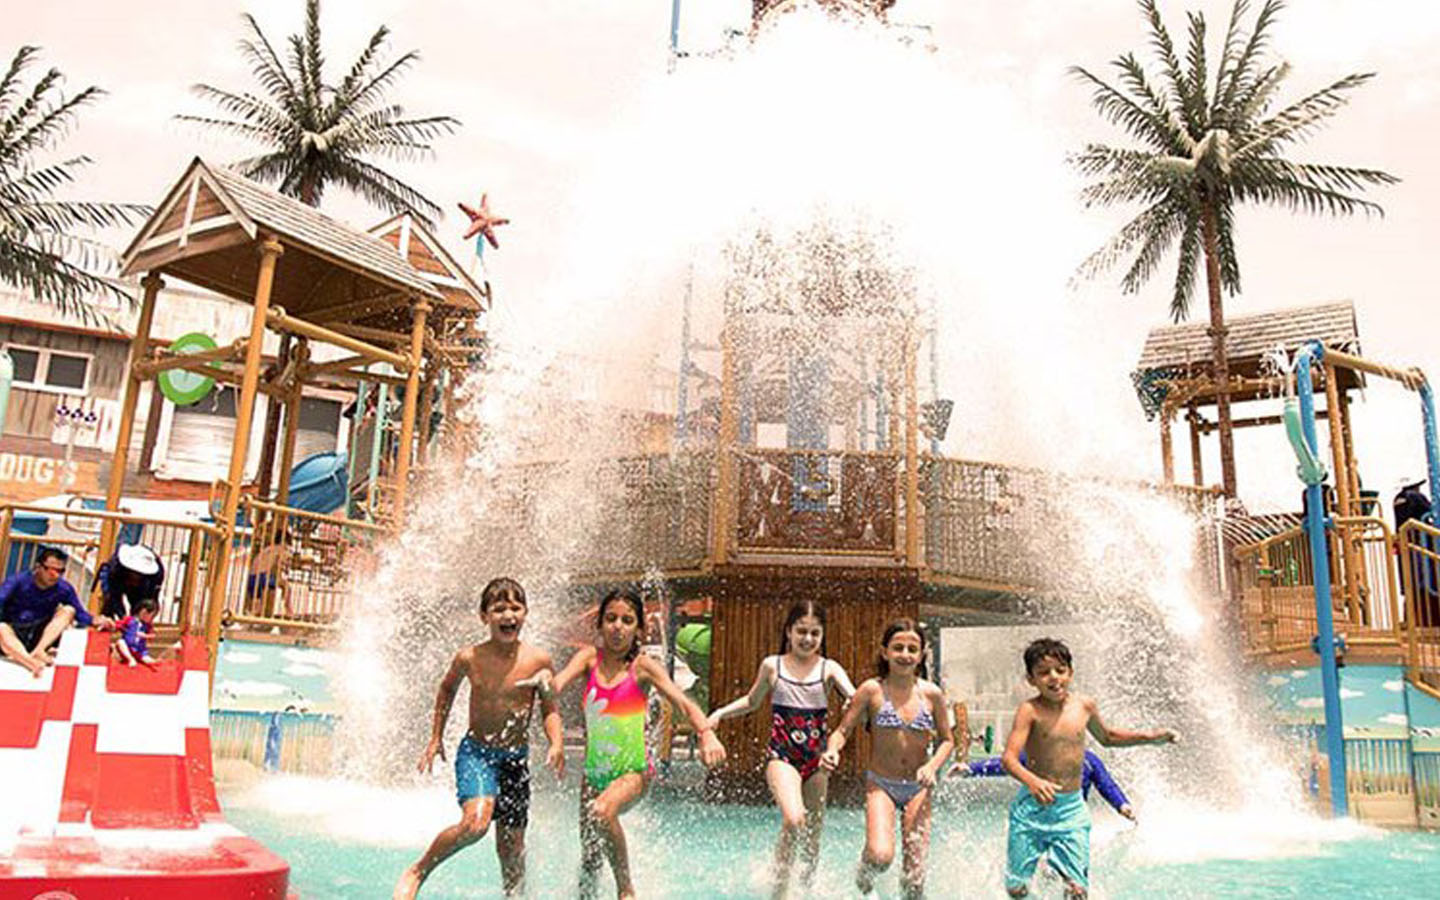 Children splashing water at the waterpark